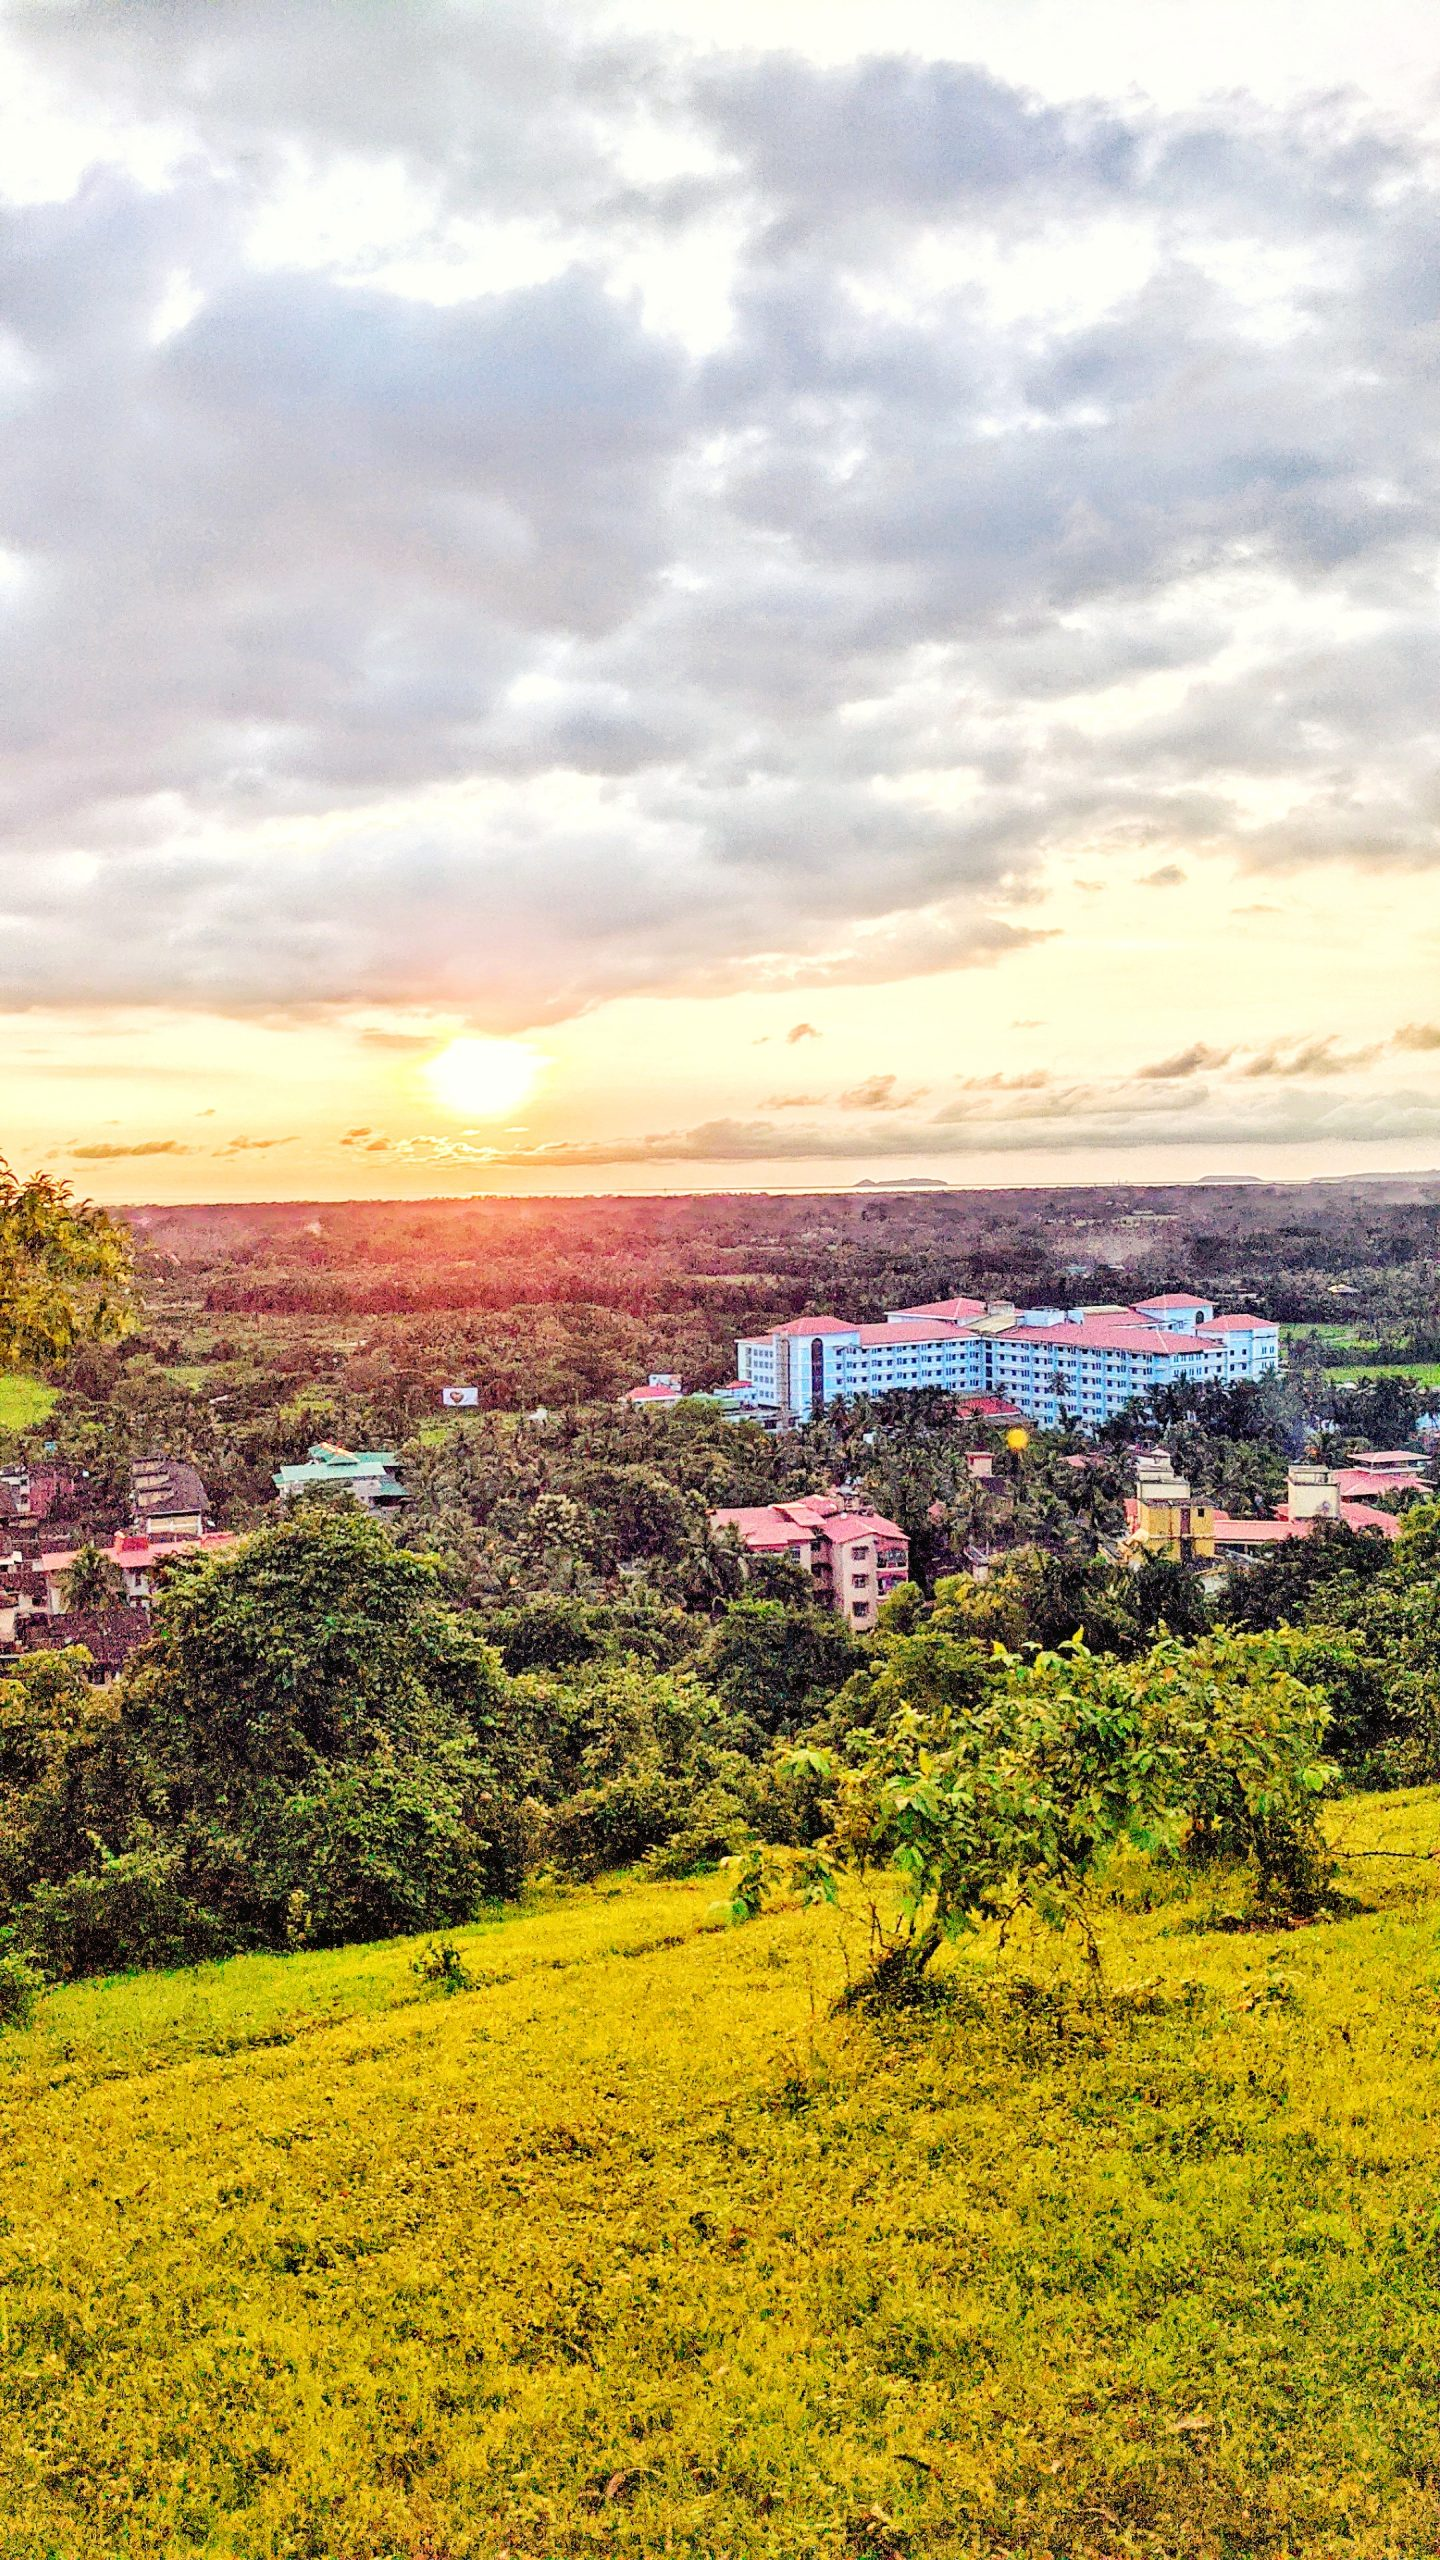 Sunset Landscape of Town